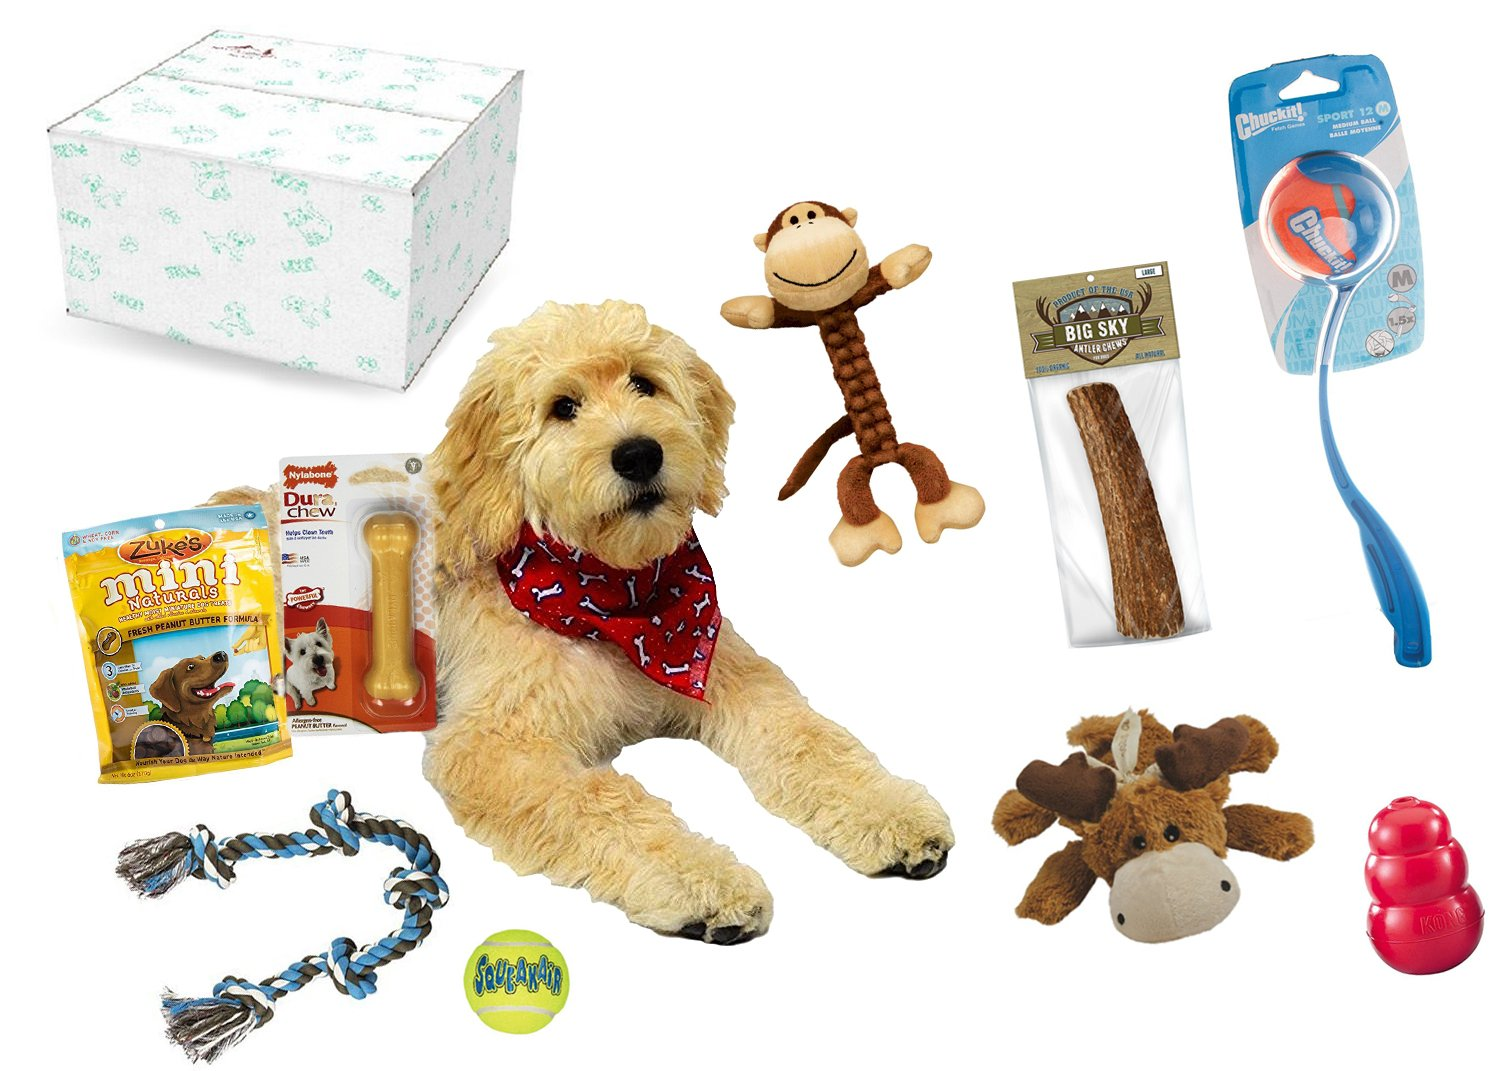 Dog Gift Box / Dog & Puppy Gift Set -- Perfect as an Adult Dog Toys & Treats Starter kit - Contains Top Names like Zukes Chuckit and Kong!